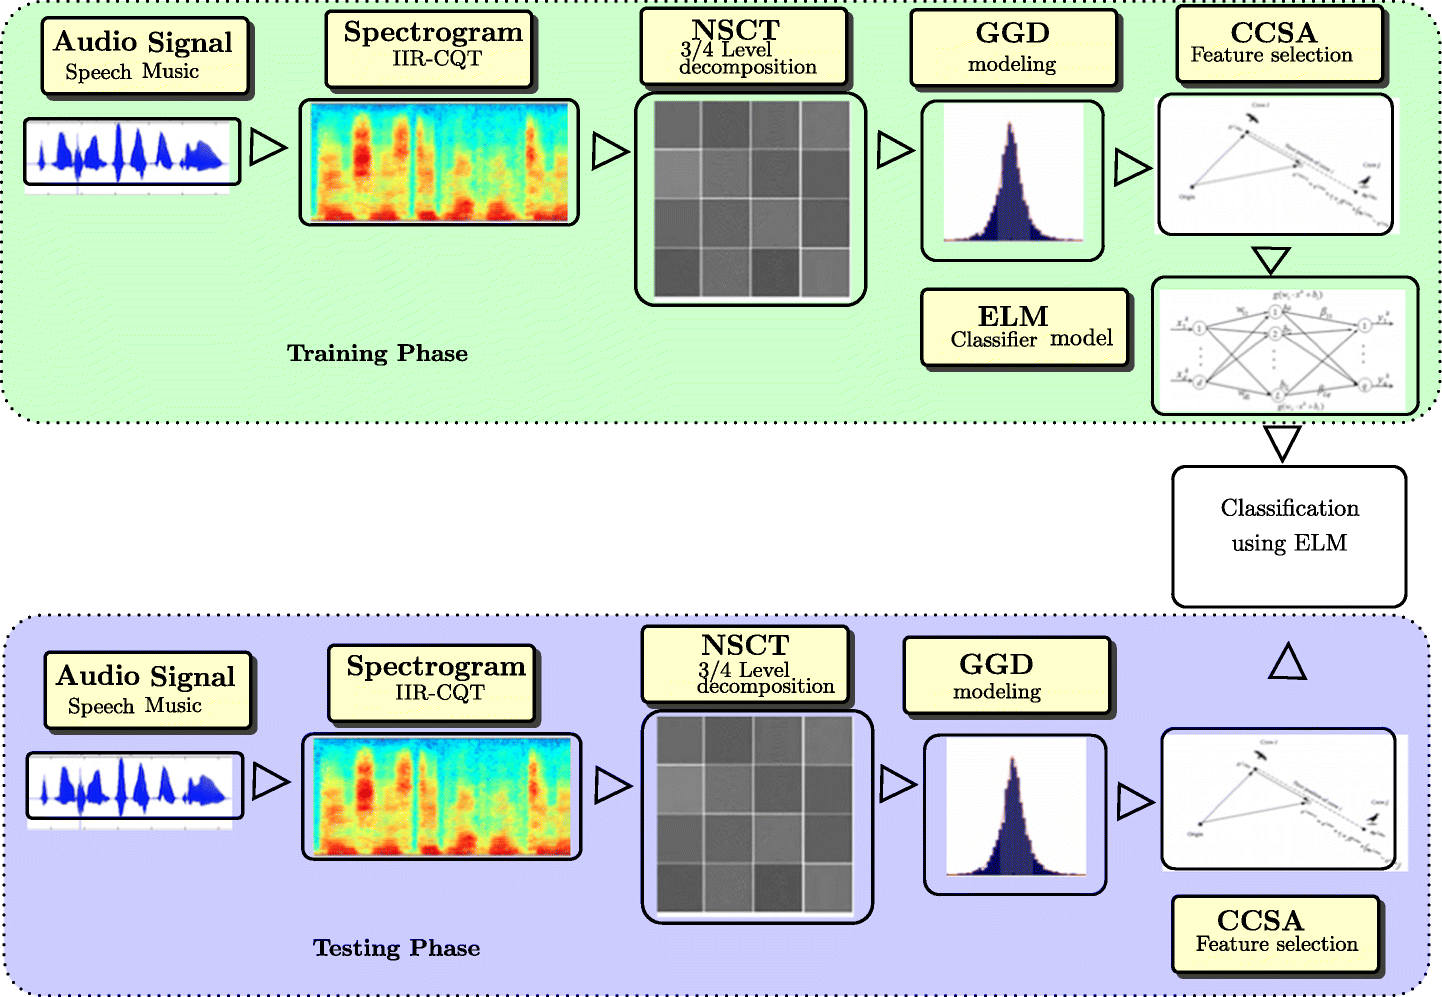 Speech and music classification using spectrogram based statistical